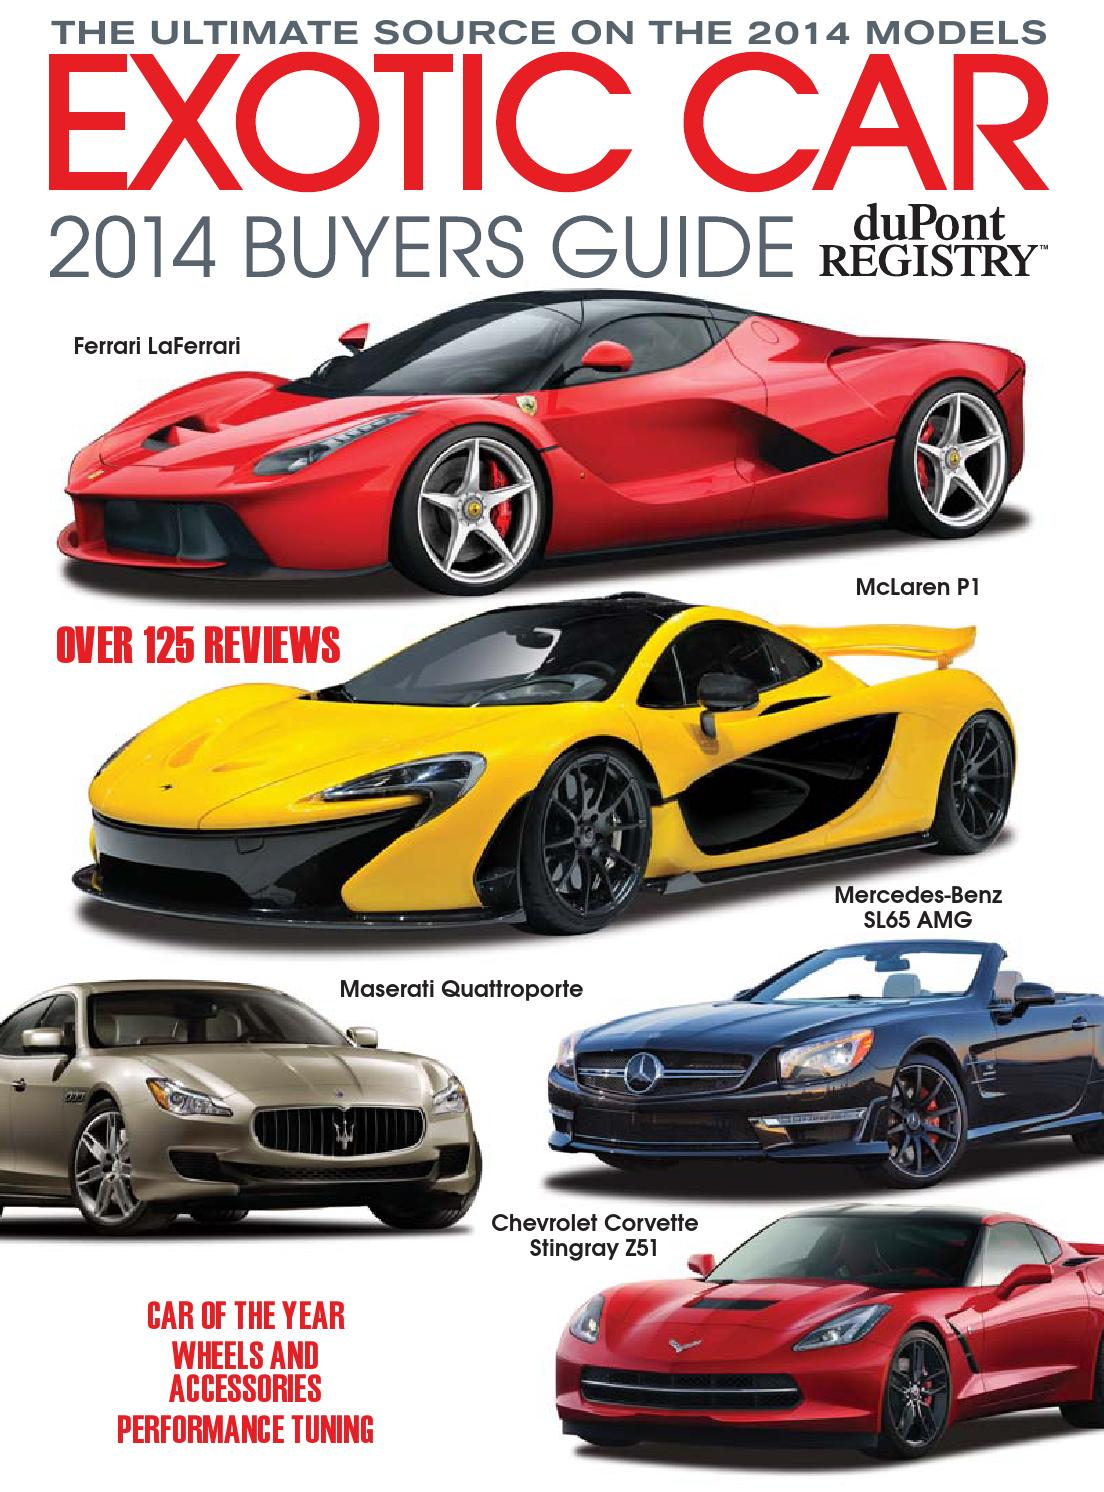 DuPontREGISTRYu0027s Exotic Car Buyers Guide 2014 By DuPont REGISTRY   Issuu